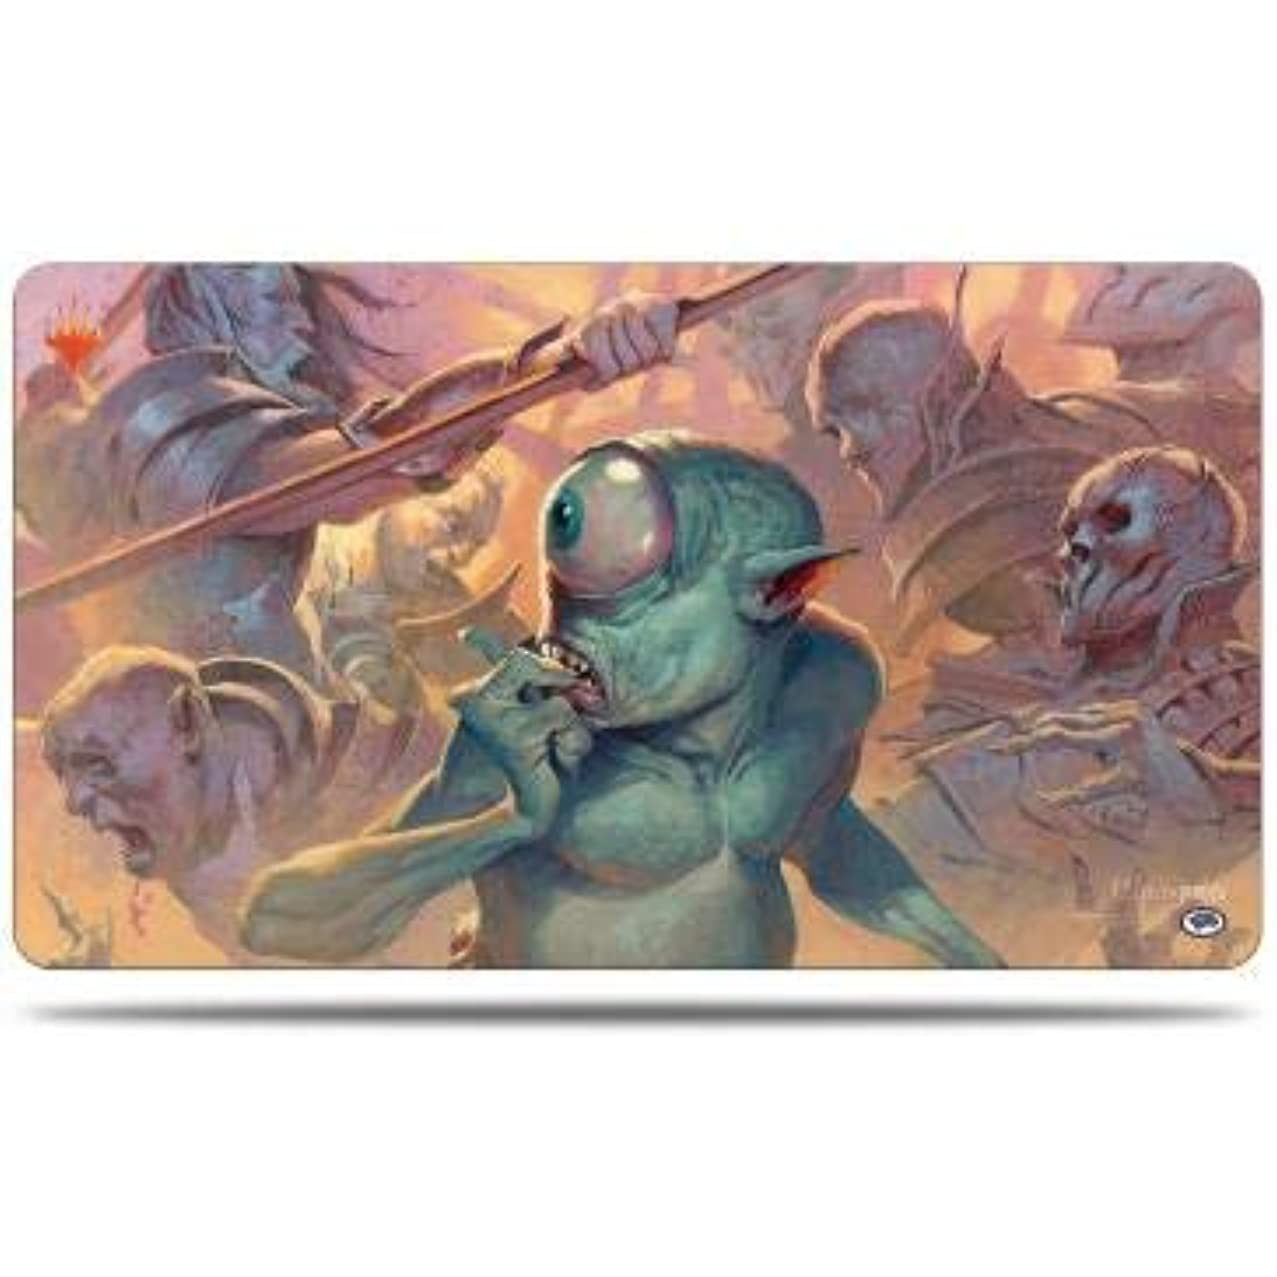 MTG War of The Spark V1 Fblthp The Lost Ultra Pro Printed Art Magic The Gathering Card Game Playmat